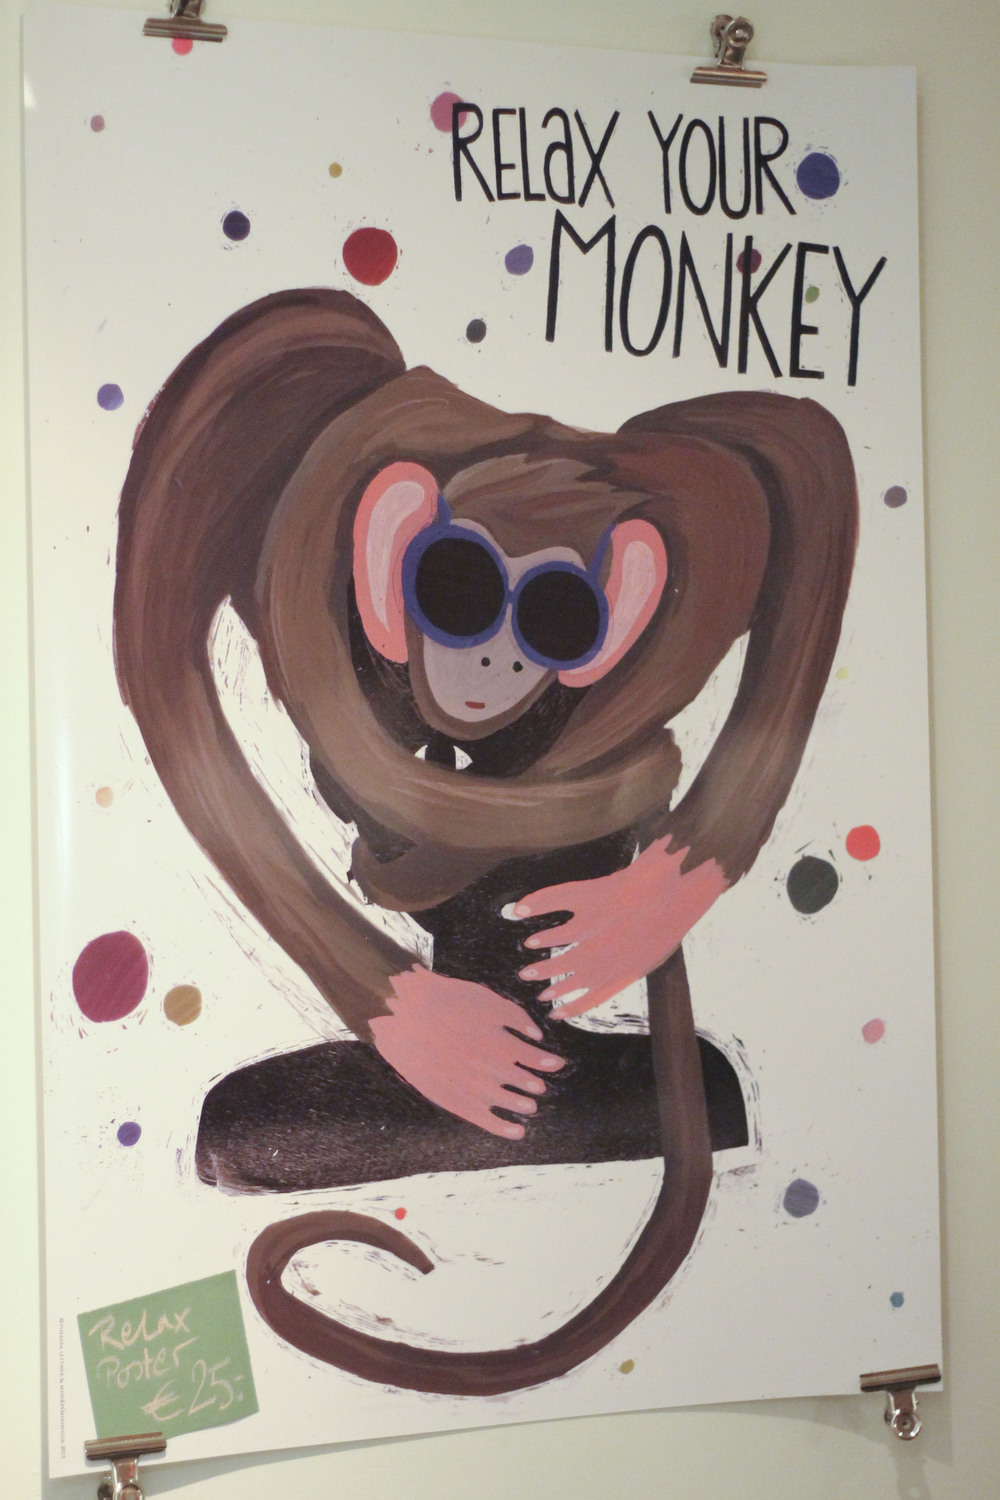 Monkey mind yoga studio hamburg571.jpg